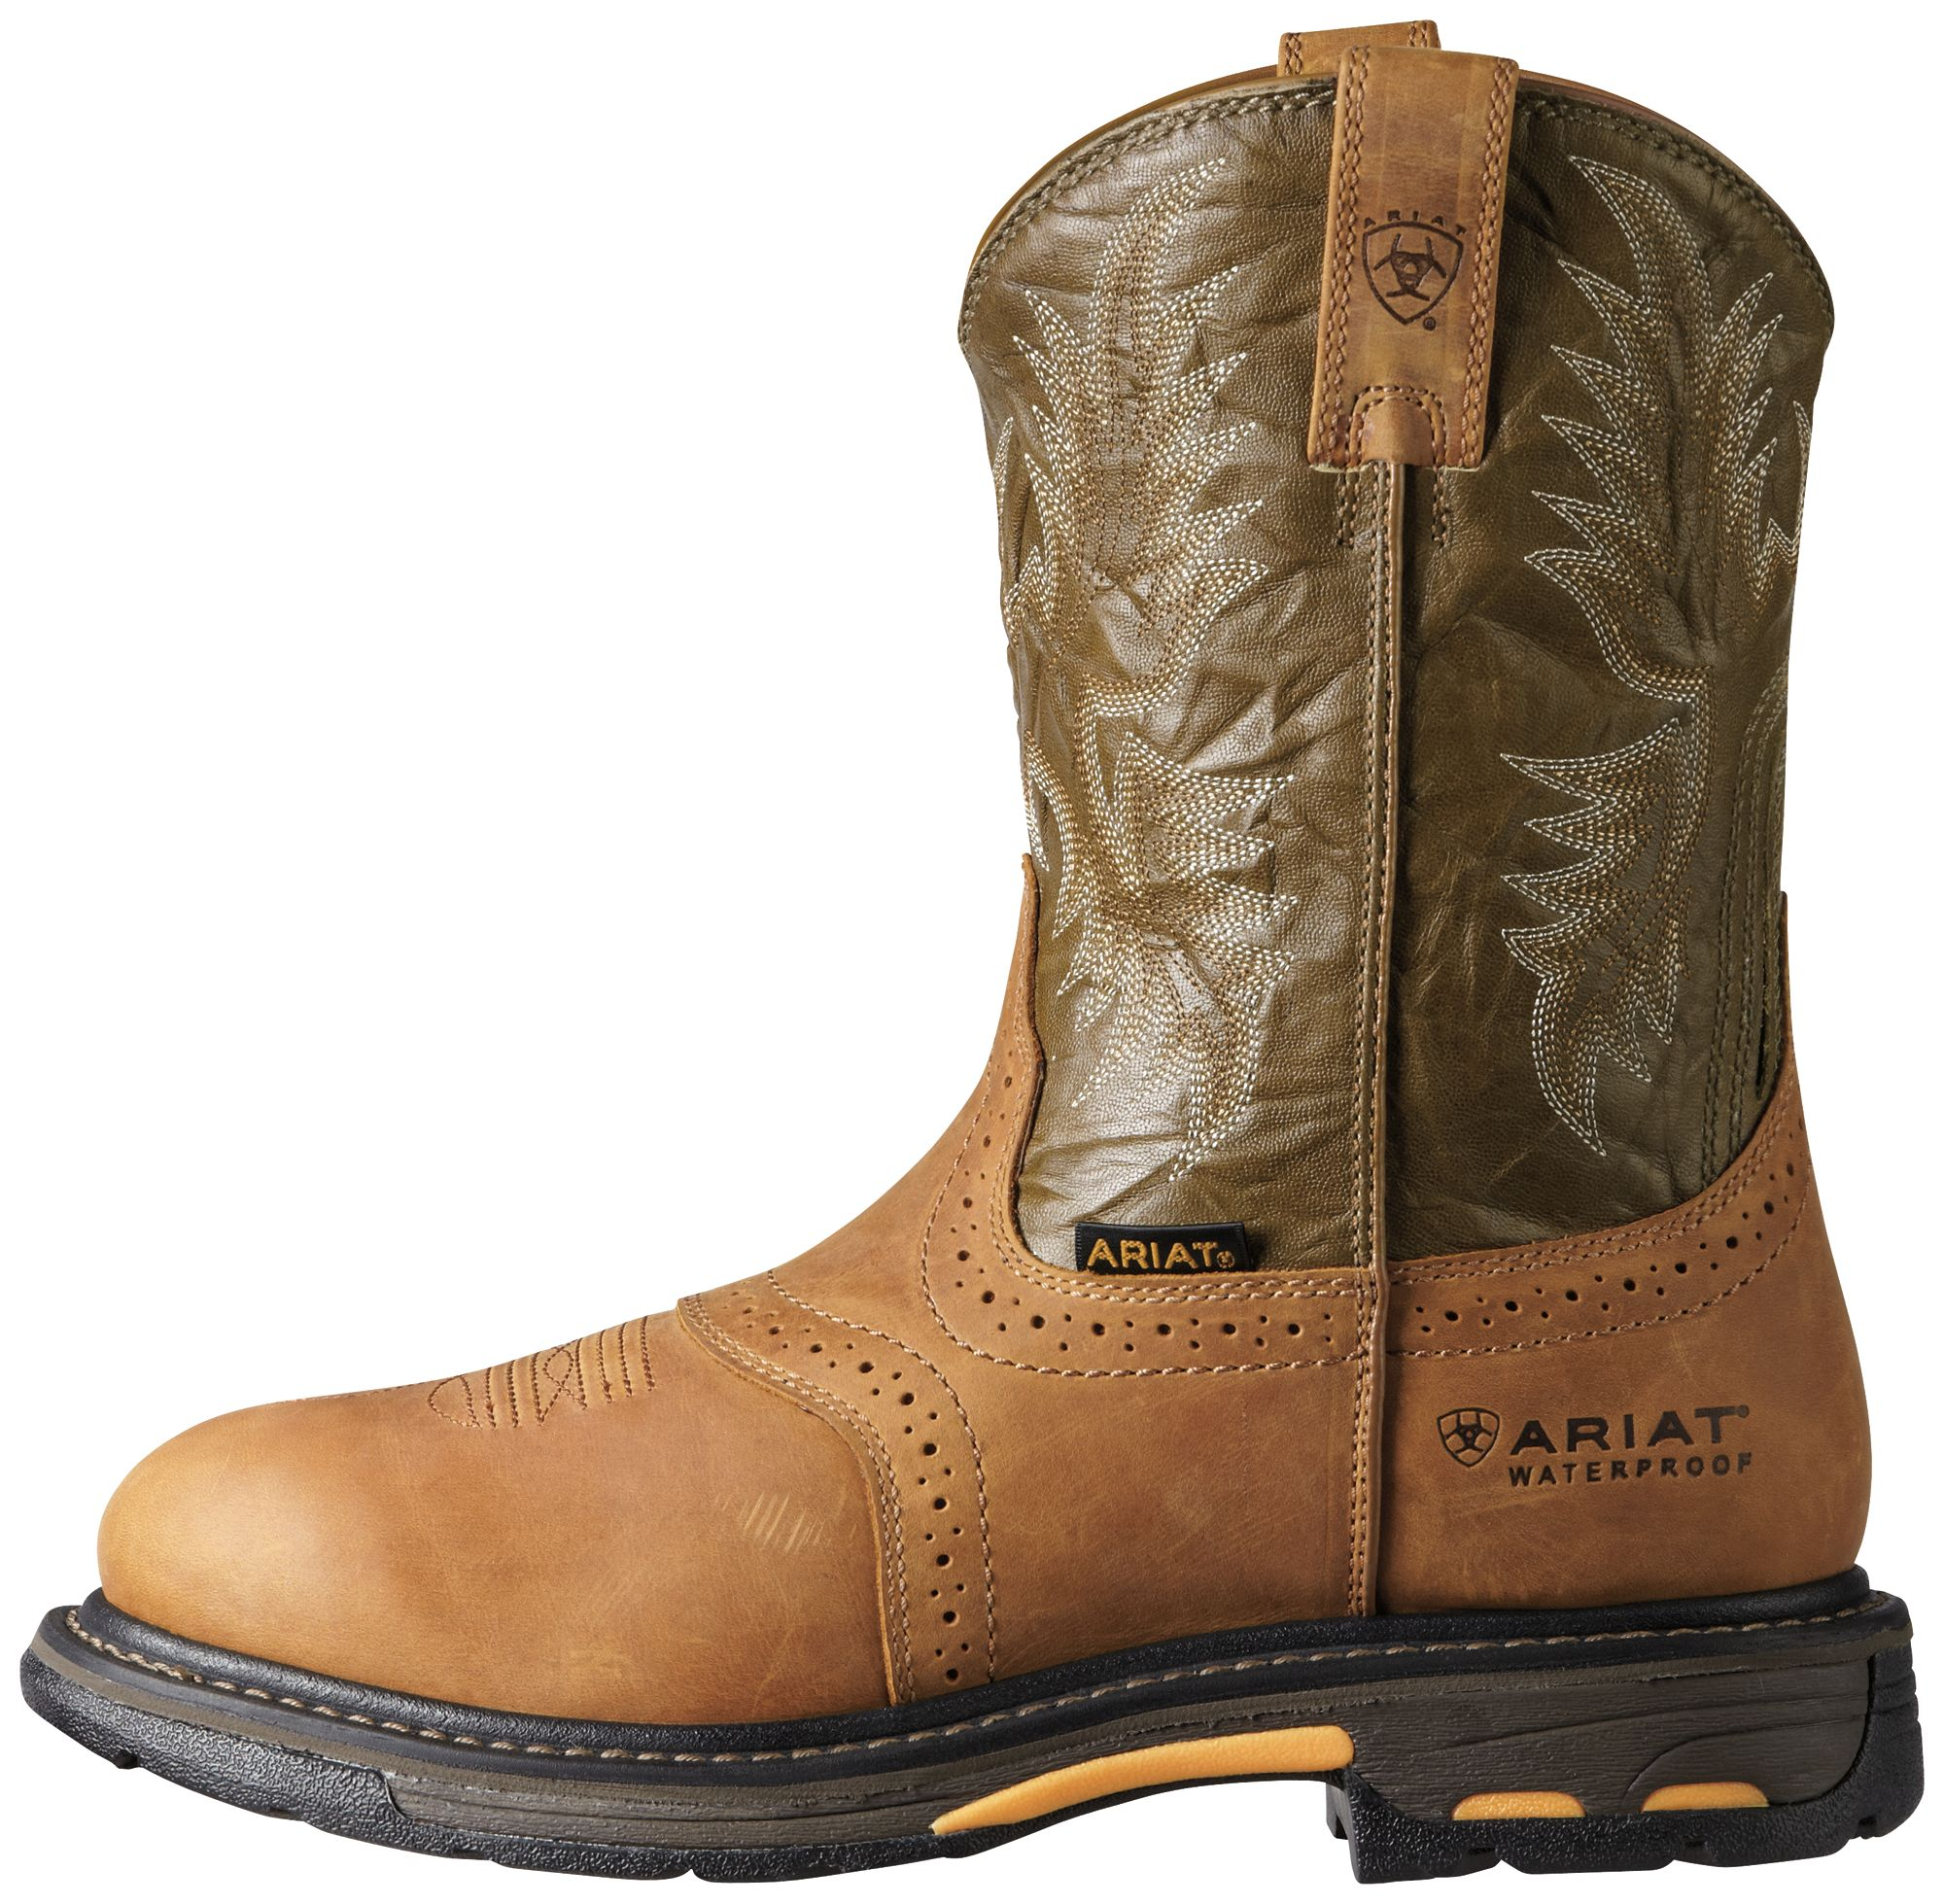 Shop the Ariat sale section to find great deals on Ariat clearance clothing, apparel, and footwear up to 50% off. Browse boots, jeans, shirts, and more for men and women. Get free shipping on orders over $ Start shopping today!